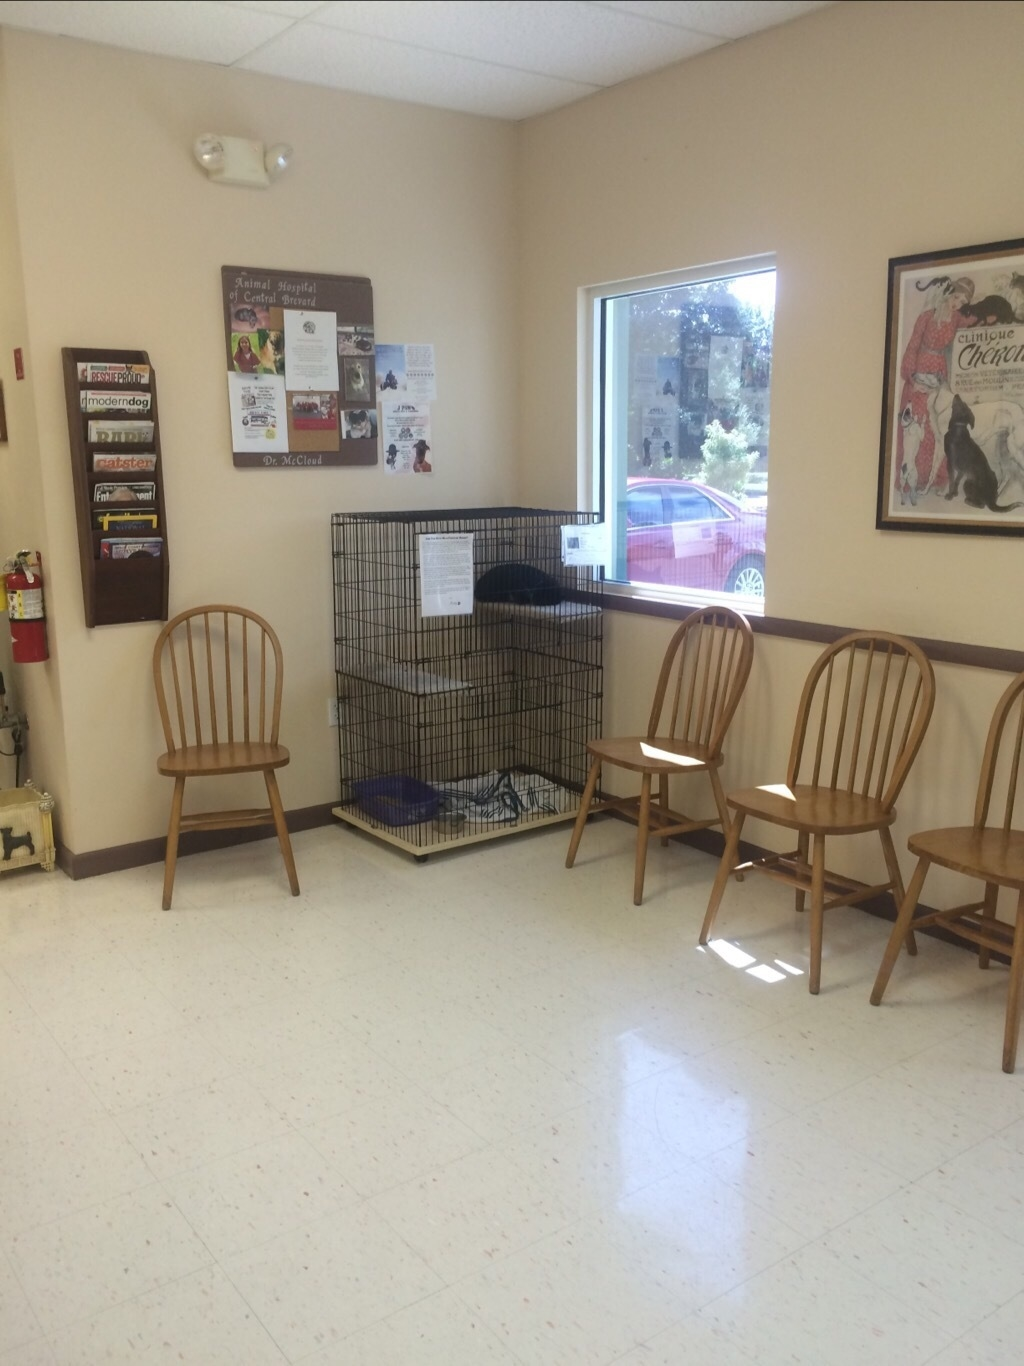 Animal Hospital of Central Brevard image 3